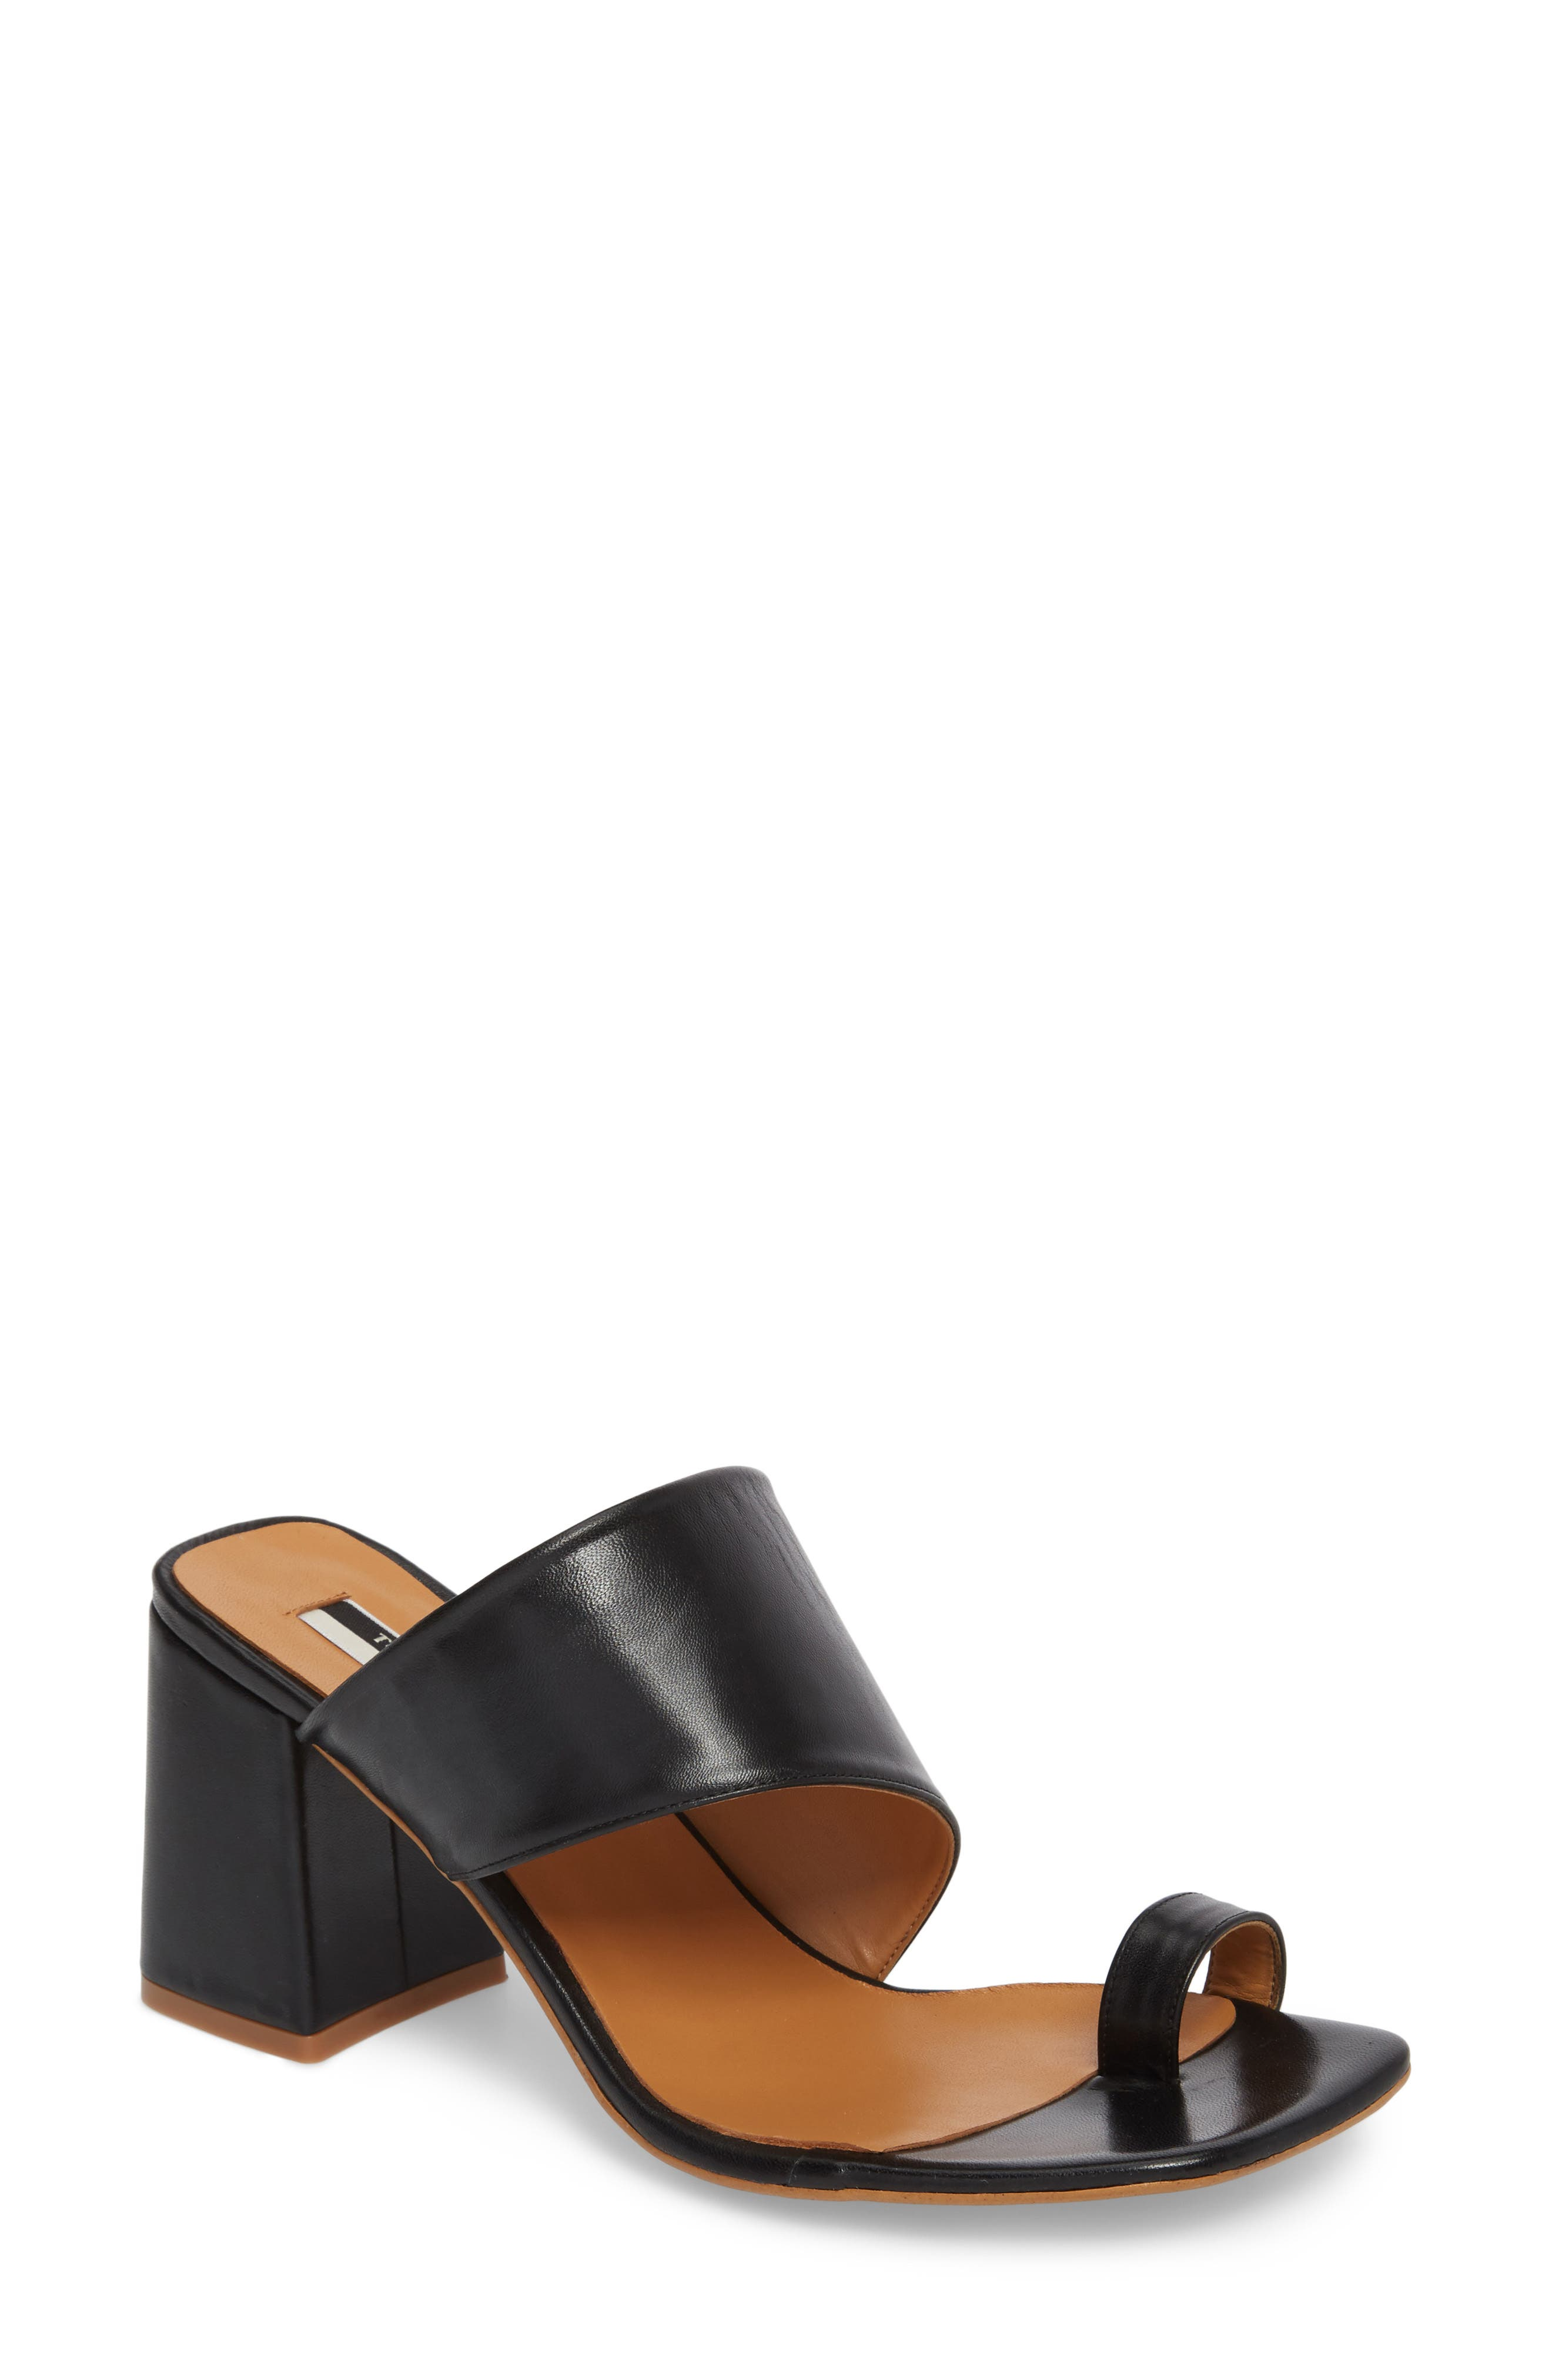 Main Image - Topshop Nimble Toe Loop Slide Sandal (Women)